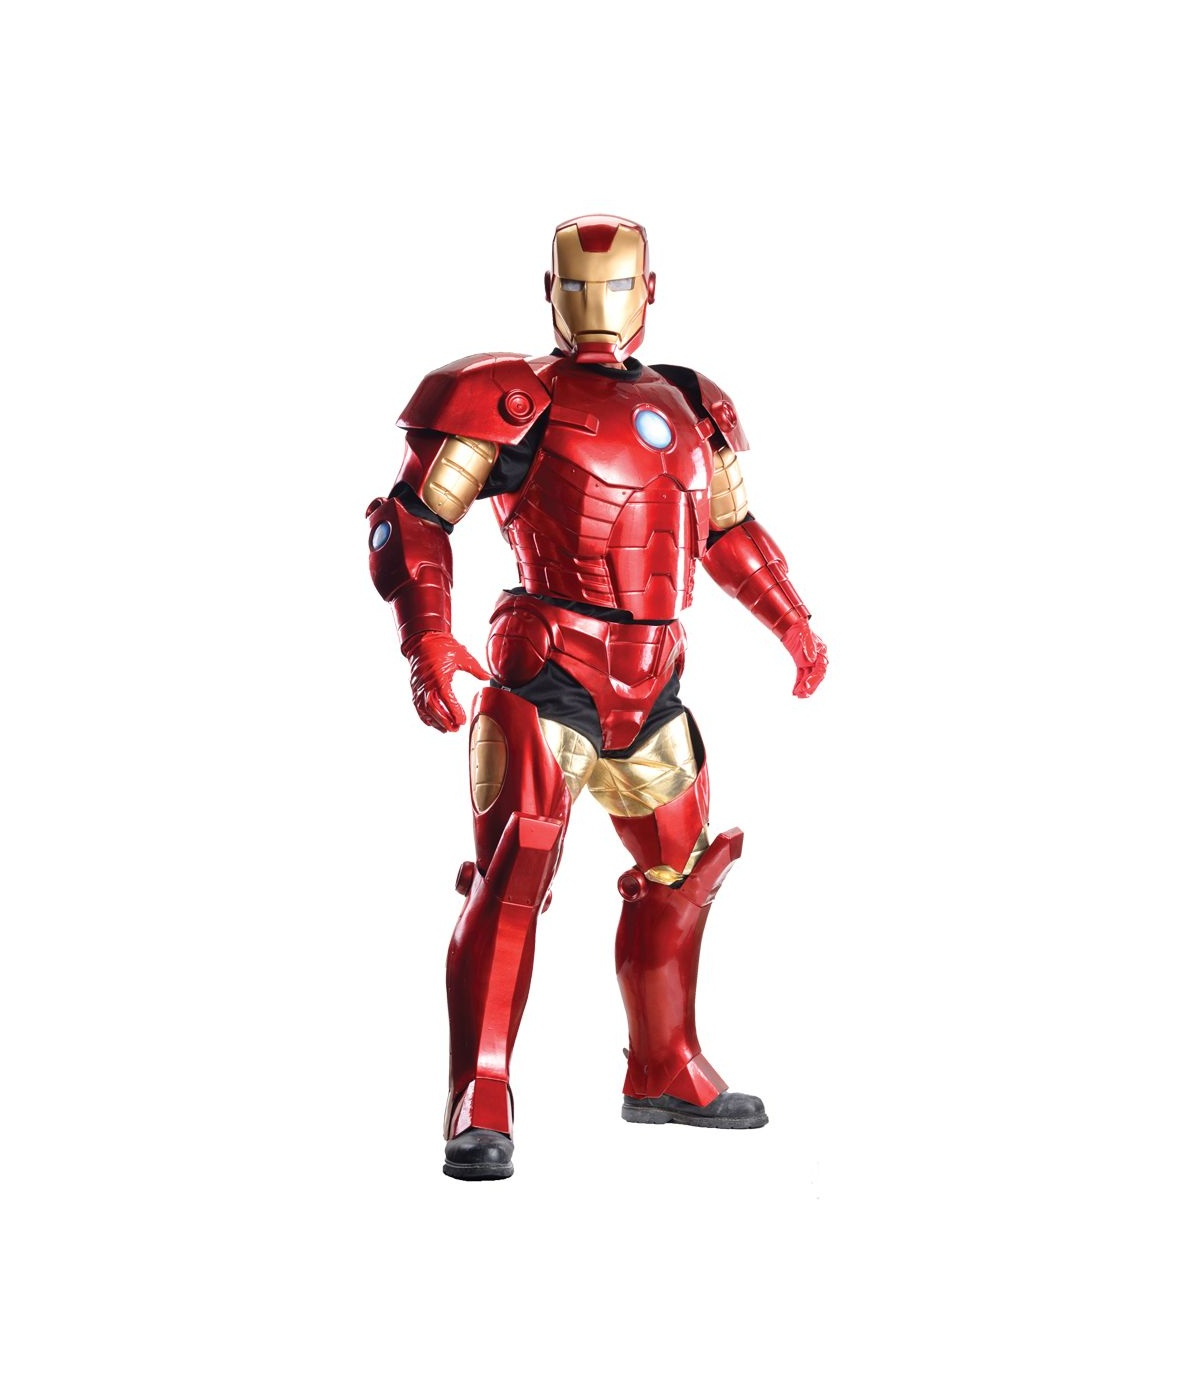 iron man ultron avengers mens costume theatrical superhero costume. Black Bedroom Furniture Sets. Home Design Ideas